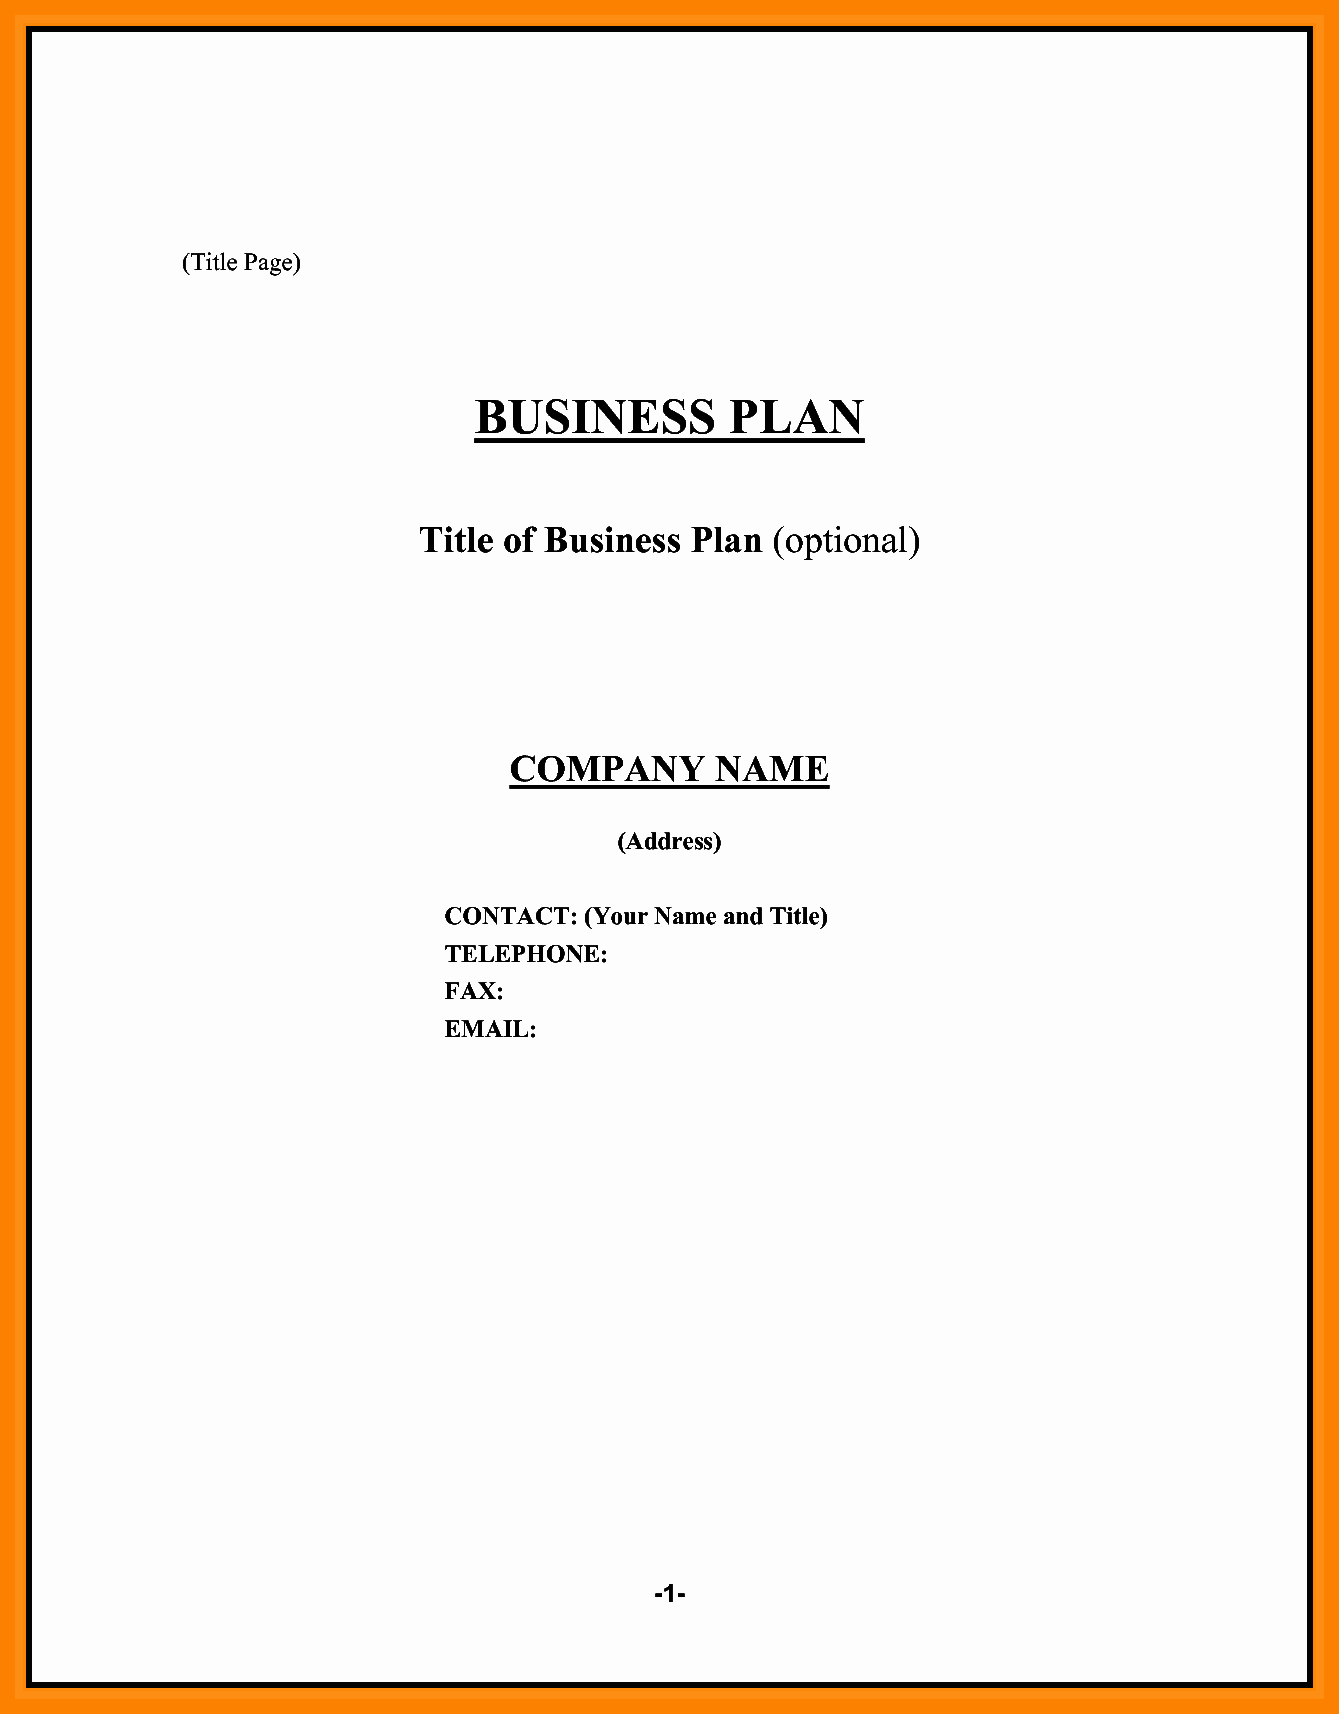 Business Plan Title Page Template New Title Page for Business Plan